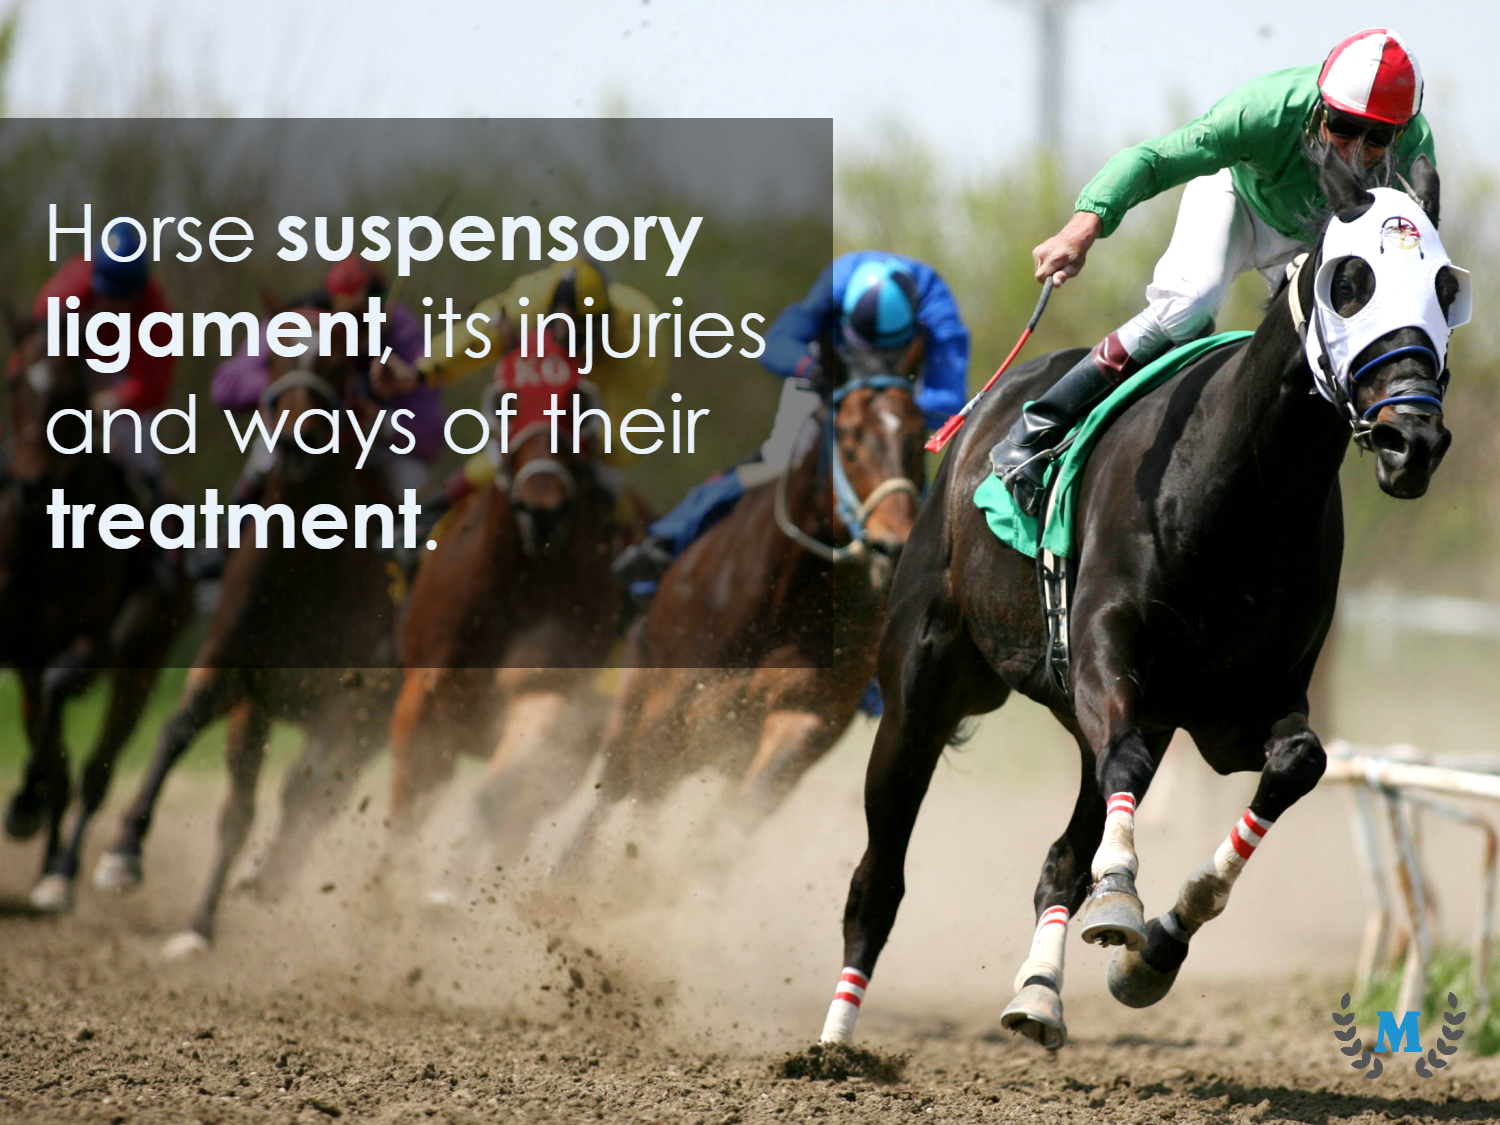 Horse suspensory ligament injury treatment with stem cell therapy